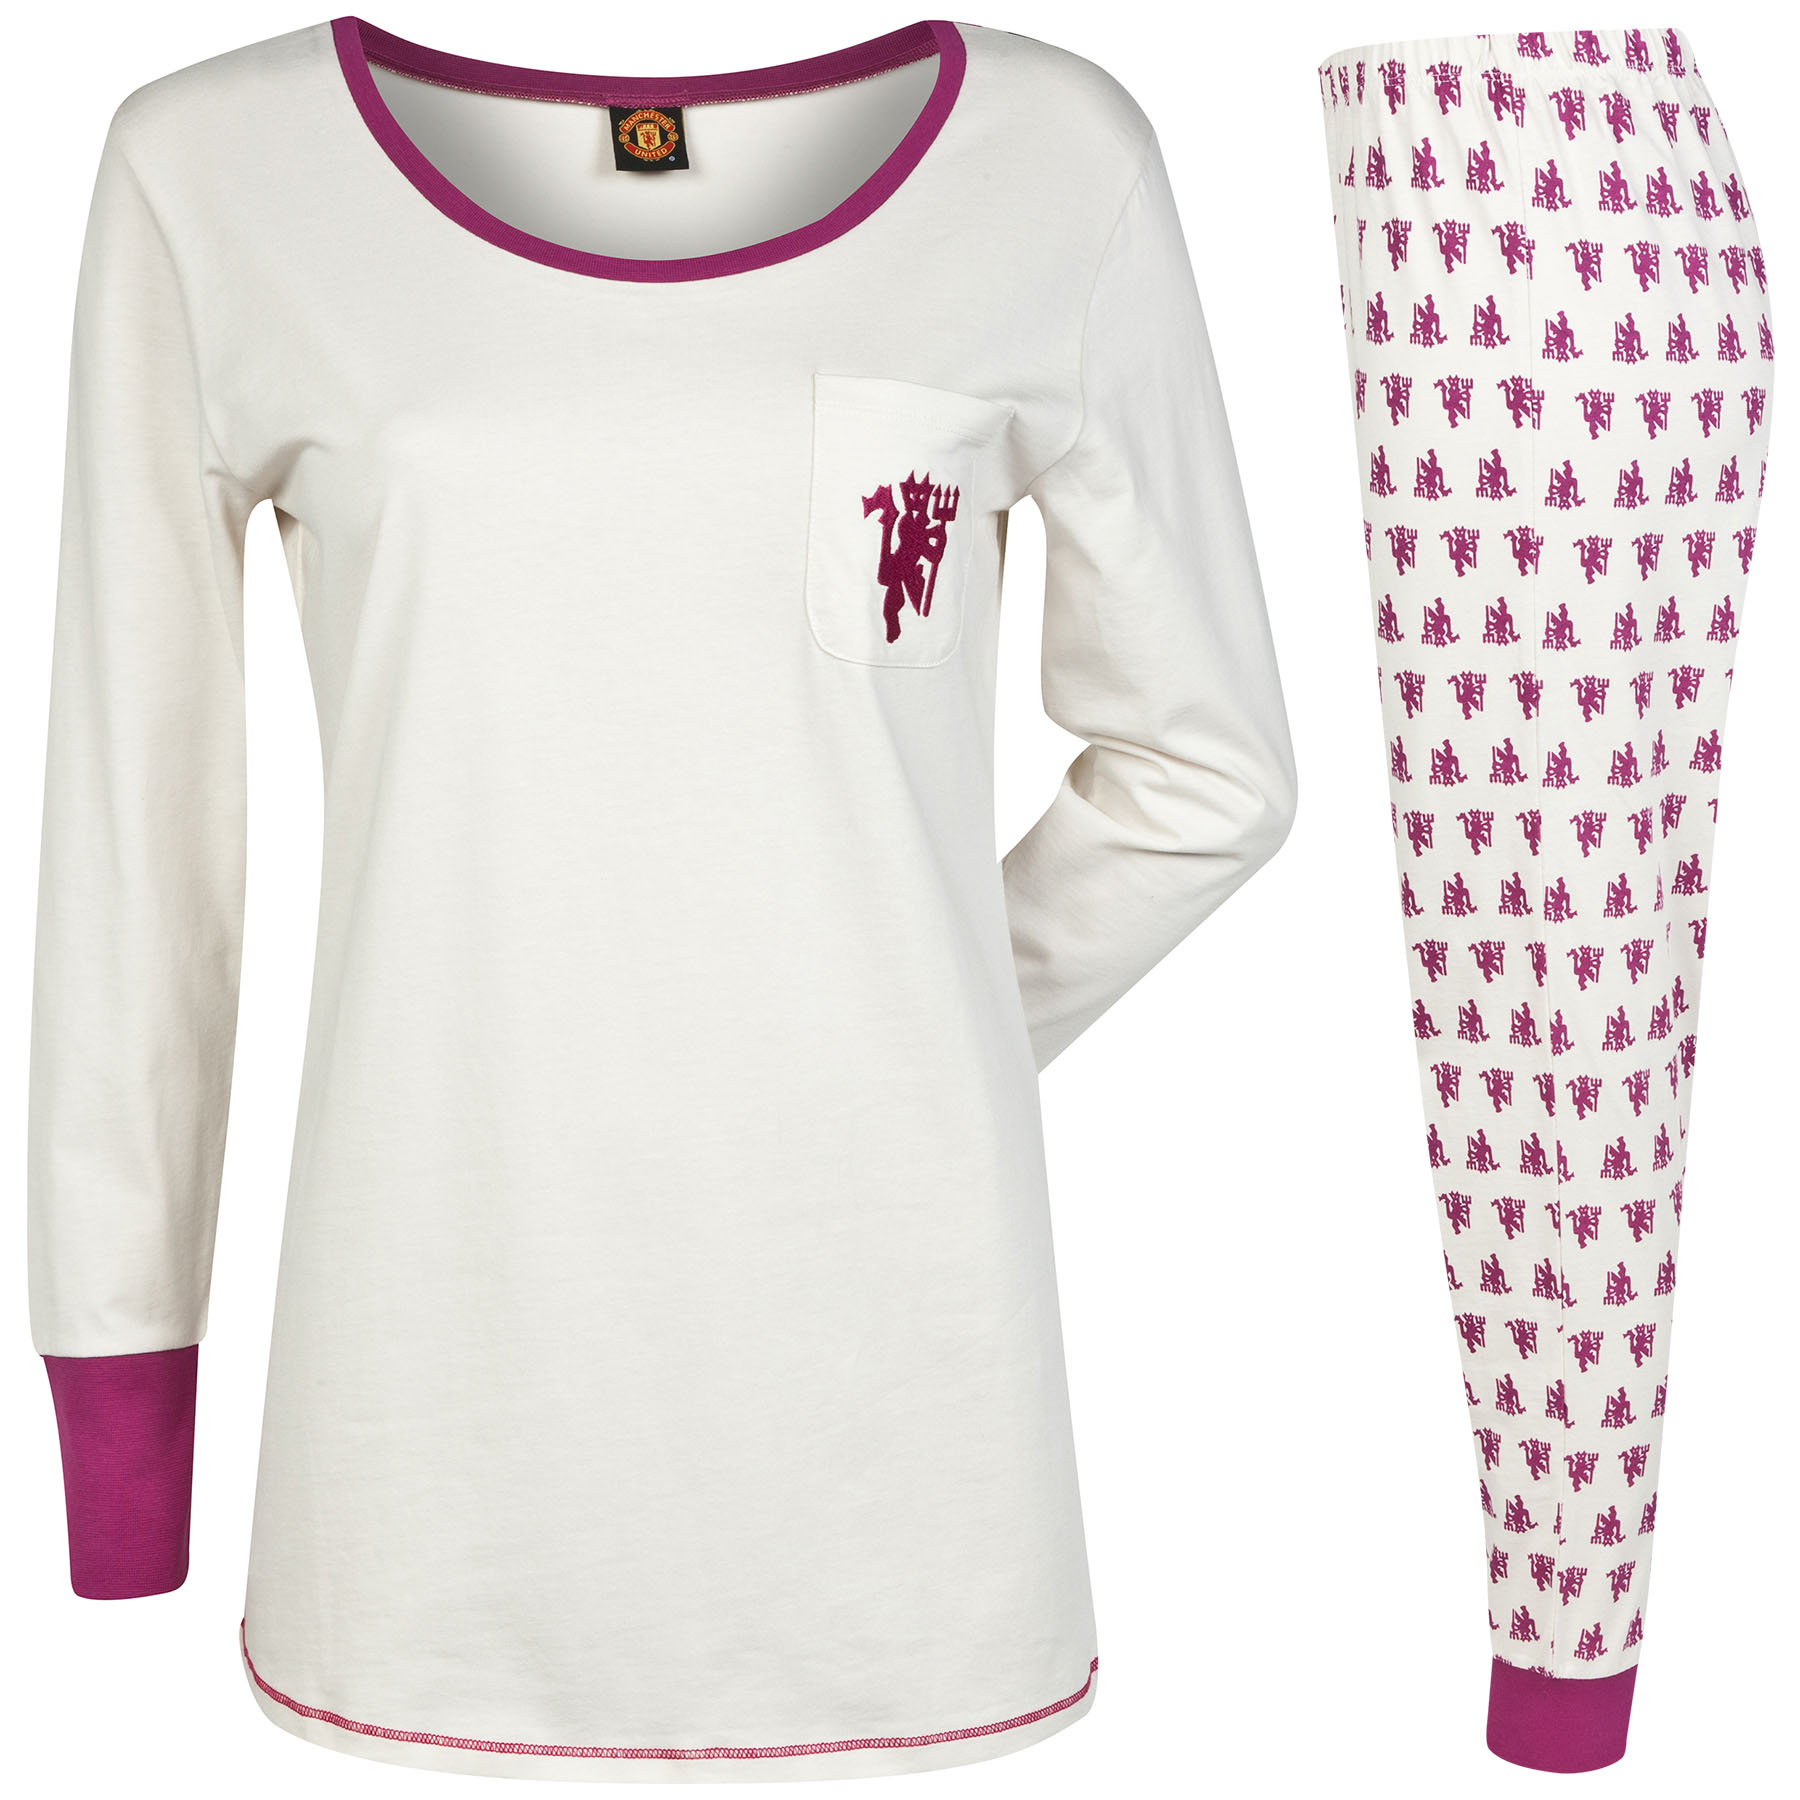 Manchester United Devil Print Pyjamas - Cream/Plum - Womens